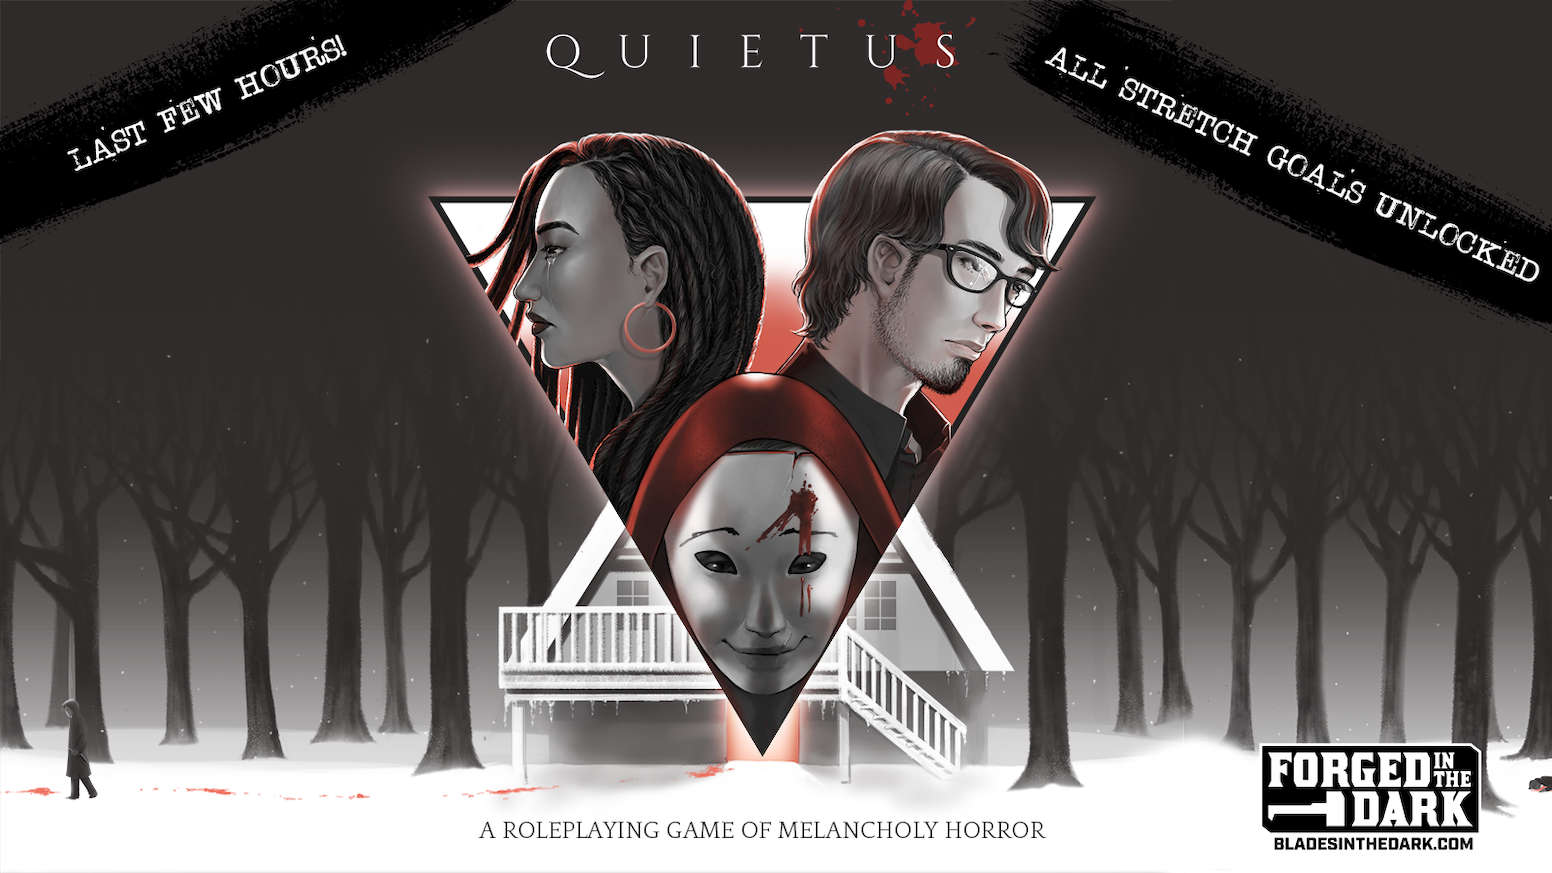 Quietus is a one-shot, no prep RPG of melancholy horror, inspired by tragic horror films like Oculus, The Strangers and Don't Look Now.